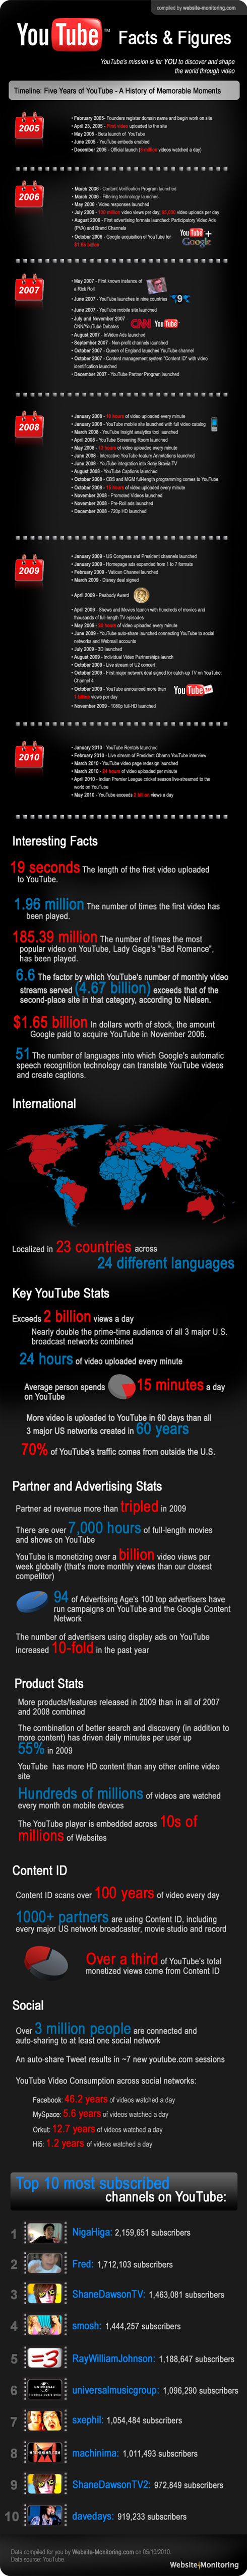 youtube infographic resized 600